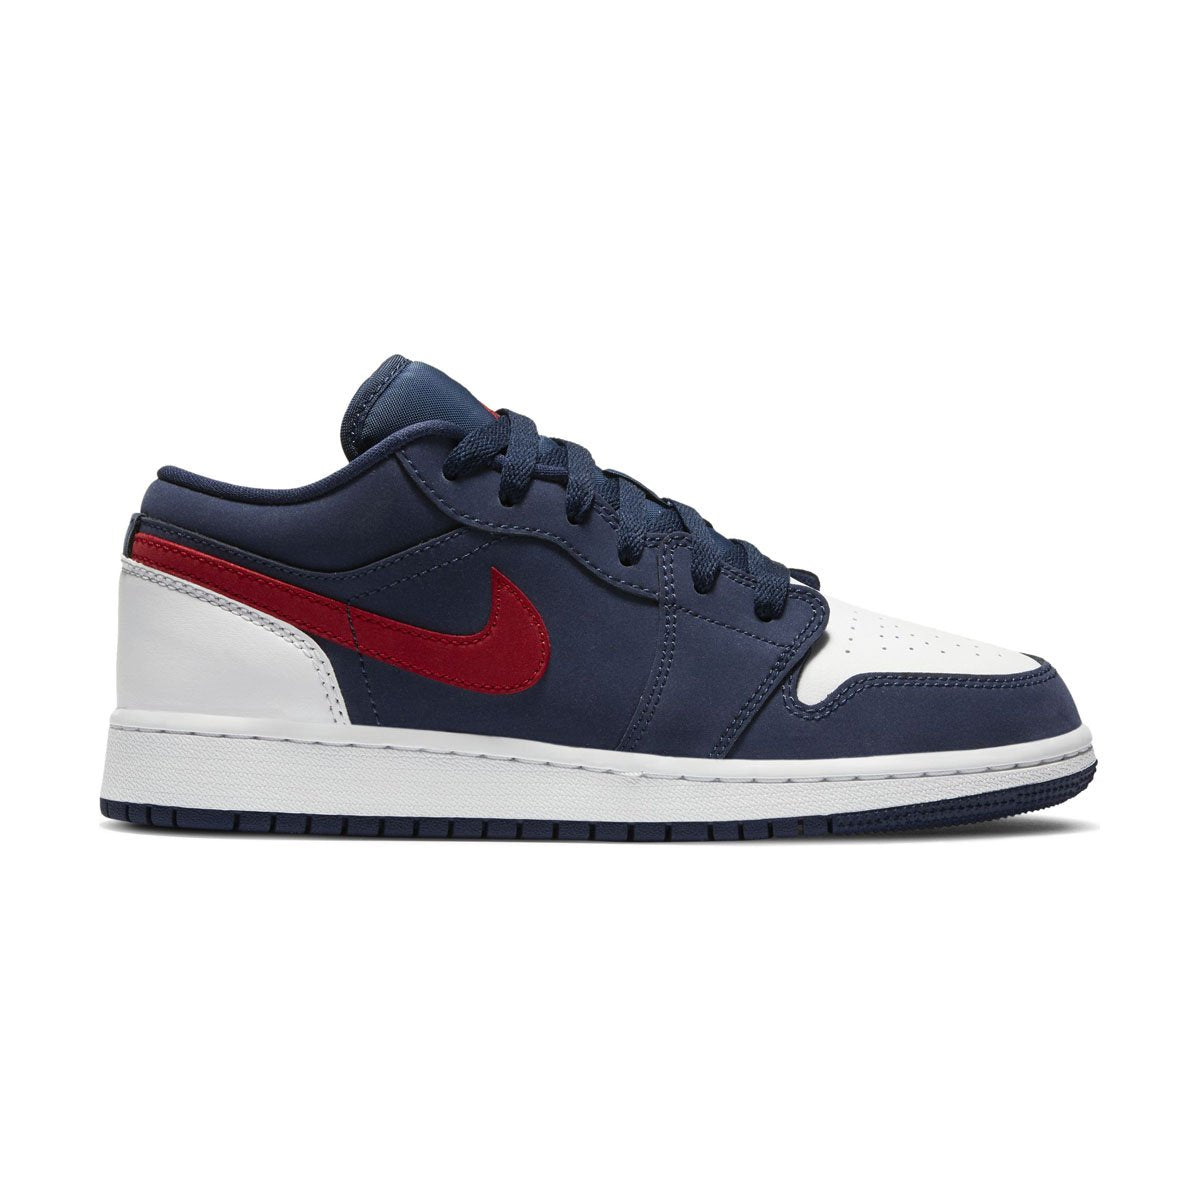 Big Kids Air Jordan 1 Low SE